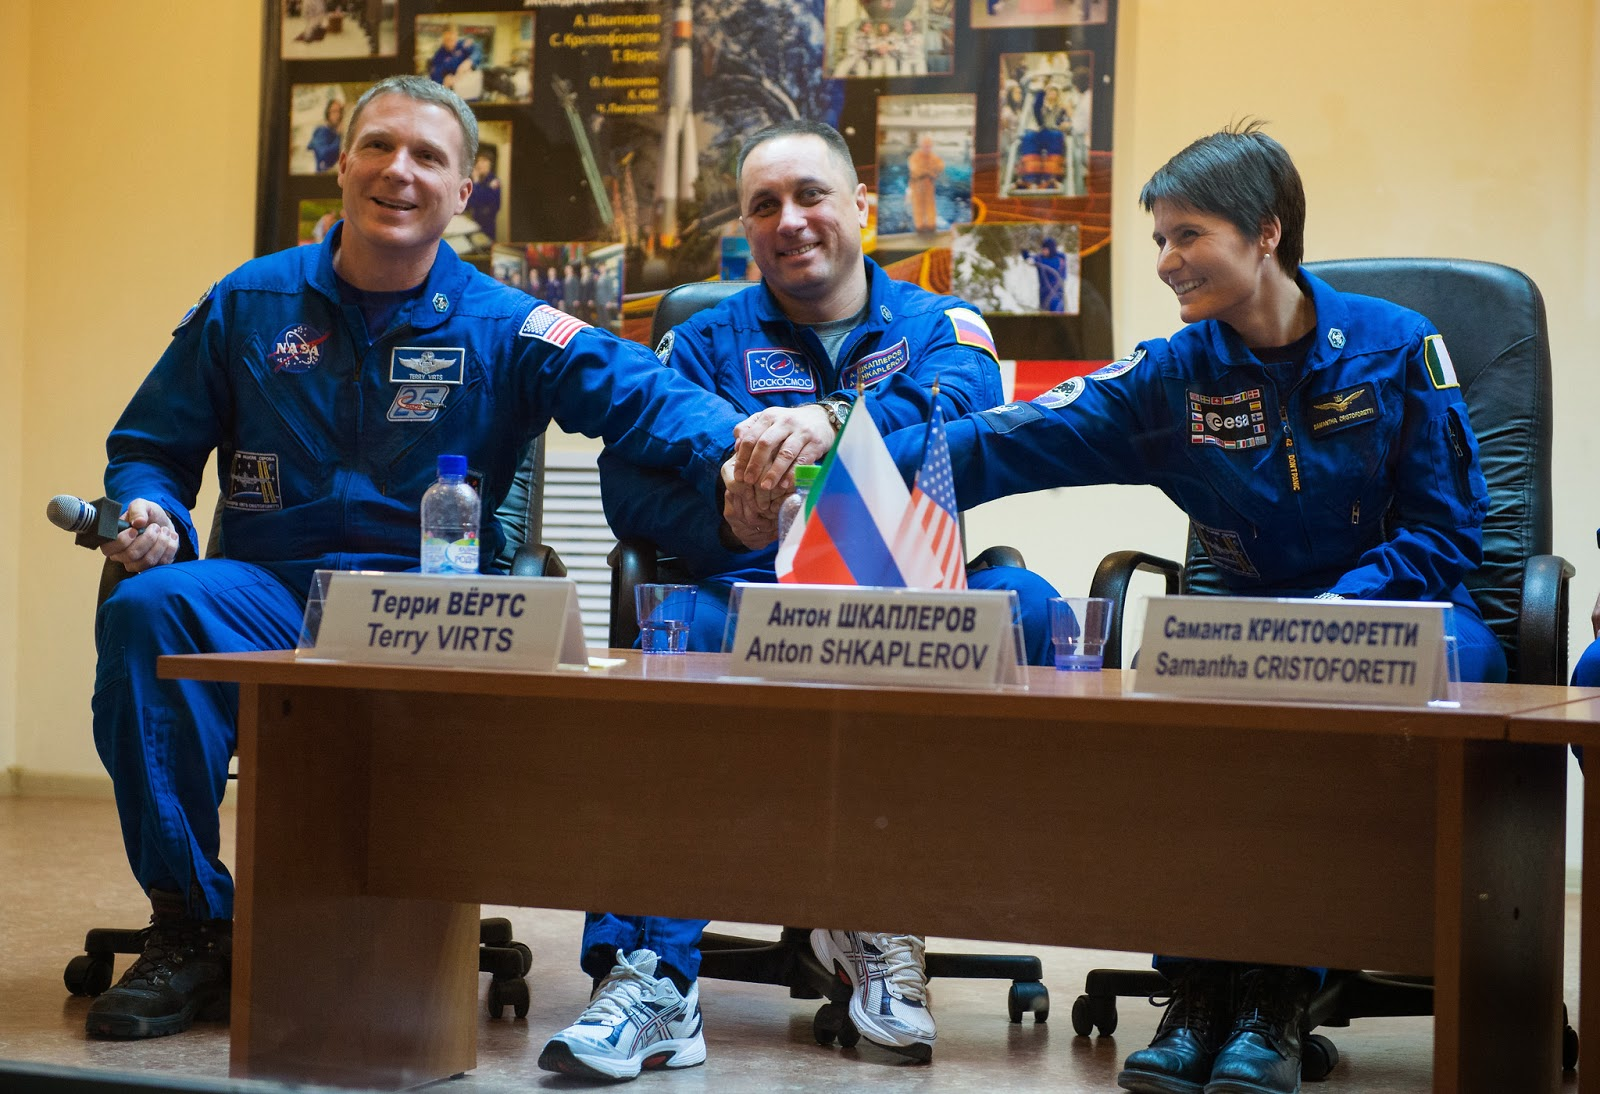 Expedition 42 Flight Engineer Terry Virts of NASA, left, Soyuz Commander Anton Shkaplerov of the Russian Federal Space Agency (Roscosmos), center, and Flight Engineer Samantha Cristoforetti of the European Space Agency (ESA), right, pose for a photo at the conclusion of the press conference, Saturday, Nov. 22, 2014, at the Cosmonaut Hotel in Baikonur, Kazakhstan. The mission to the International Space Station is set to launch Nov. 24 from the Baikonur Cosmodrome. Photo Credit: (NASA/Aubrey Gemignani)